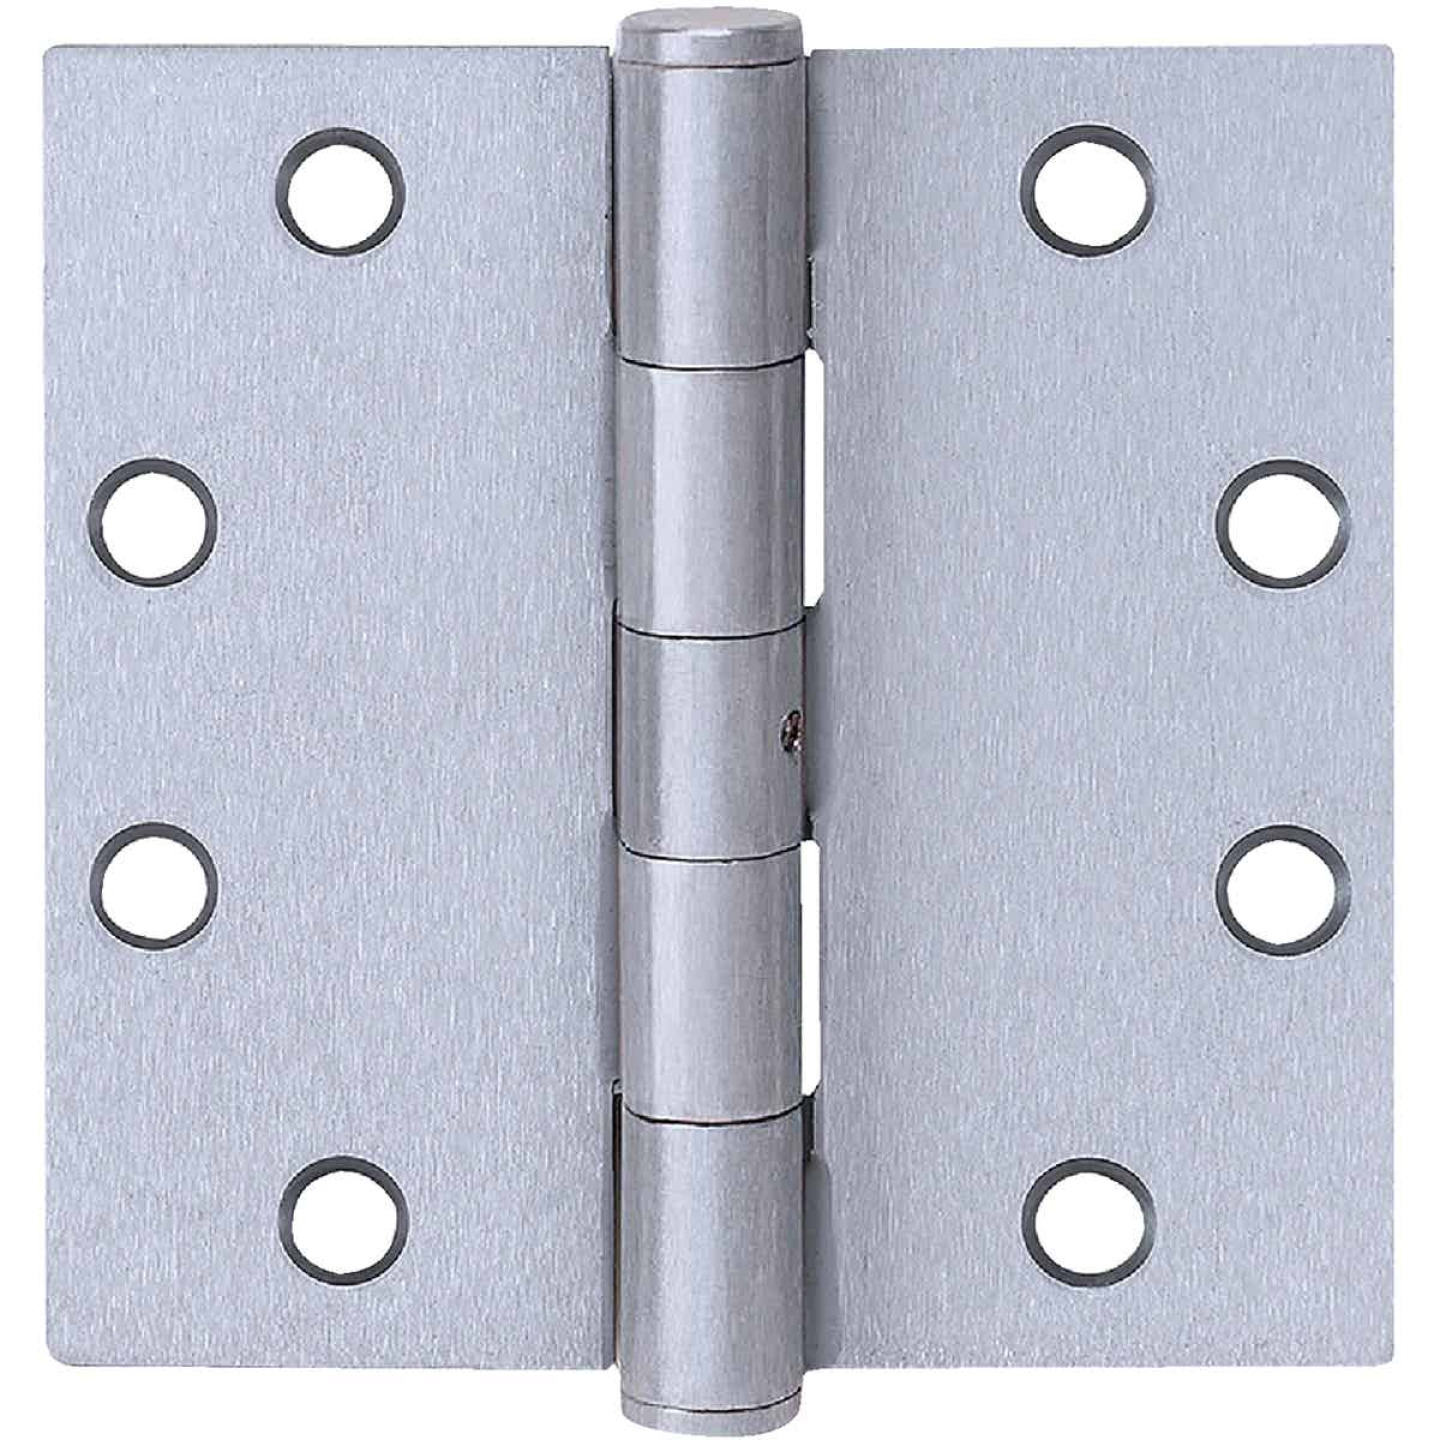 Tell Commercial Stainless Steel 4 In. Square Plain Bearing Hinge with Removable Pin Image 1